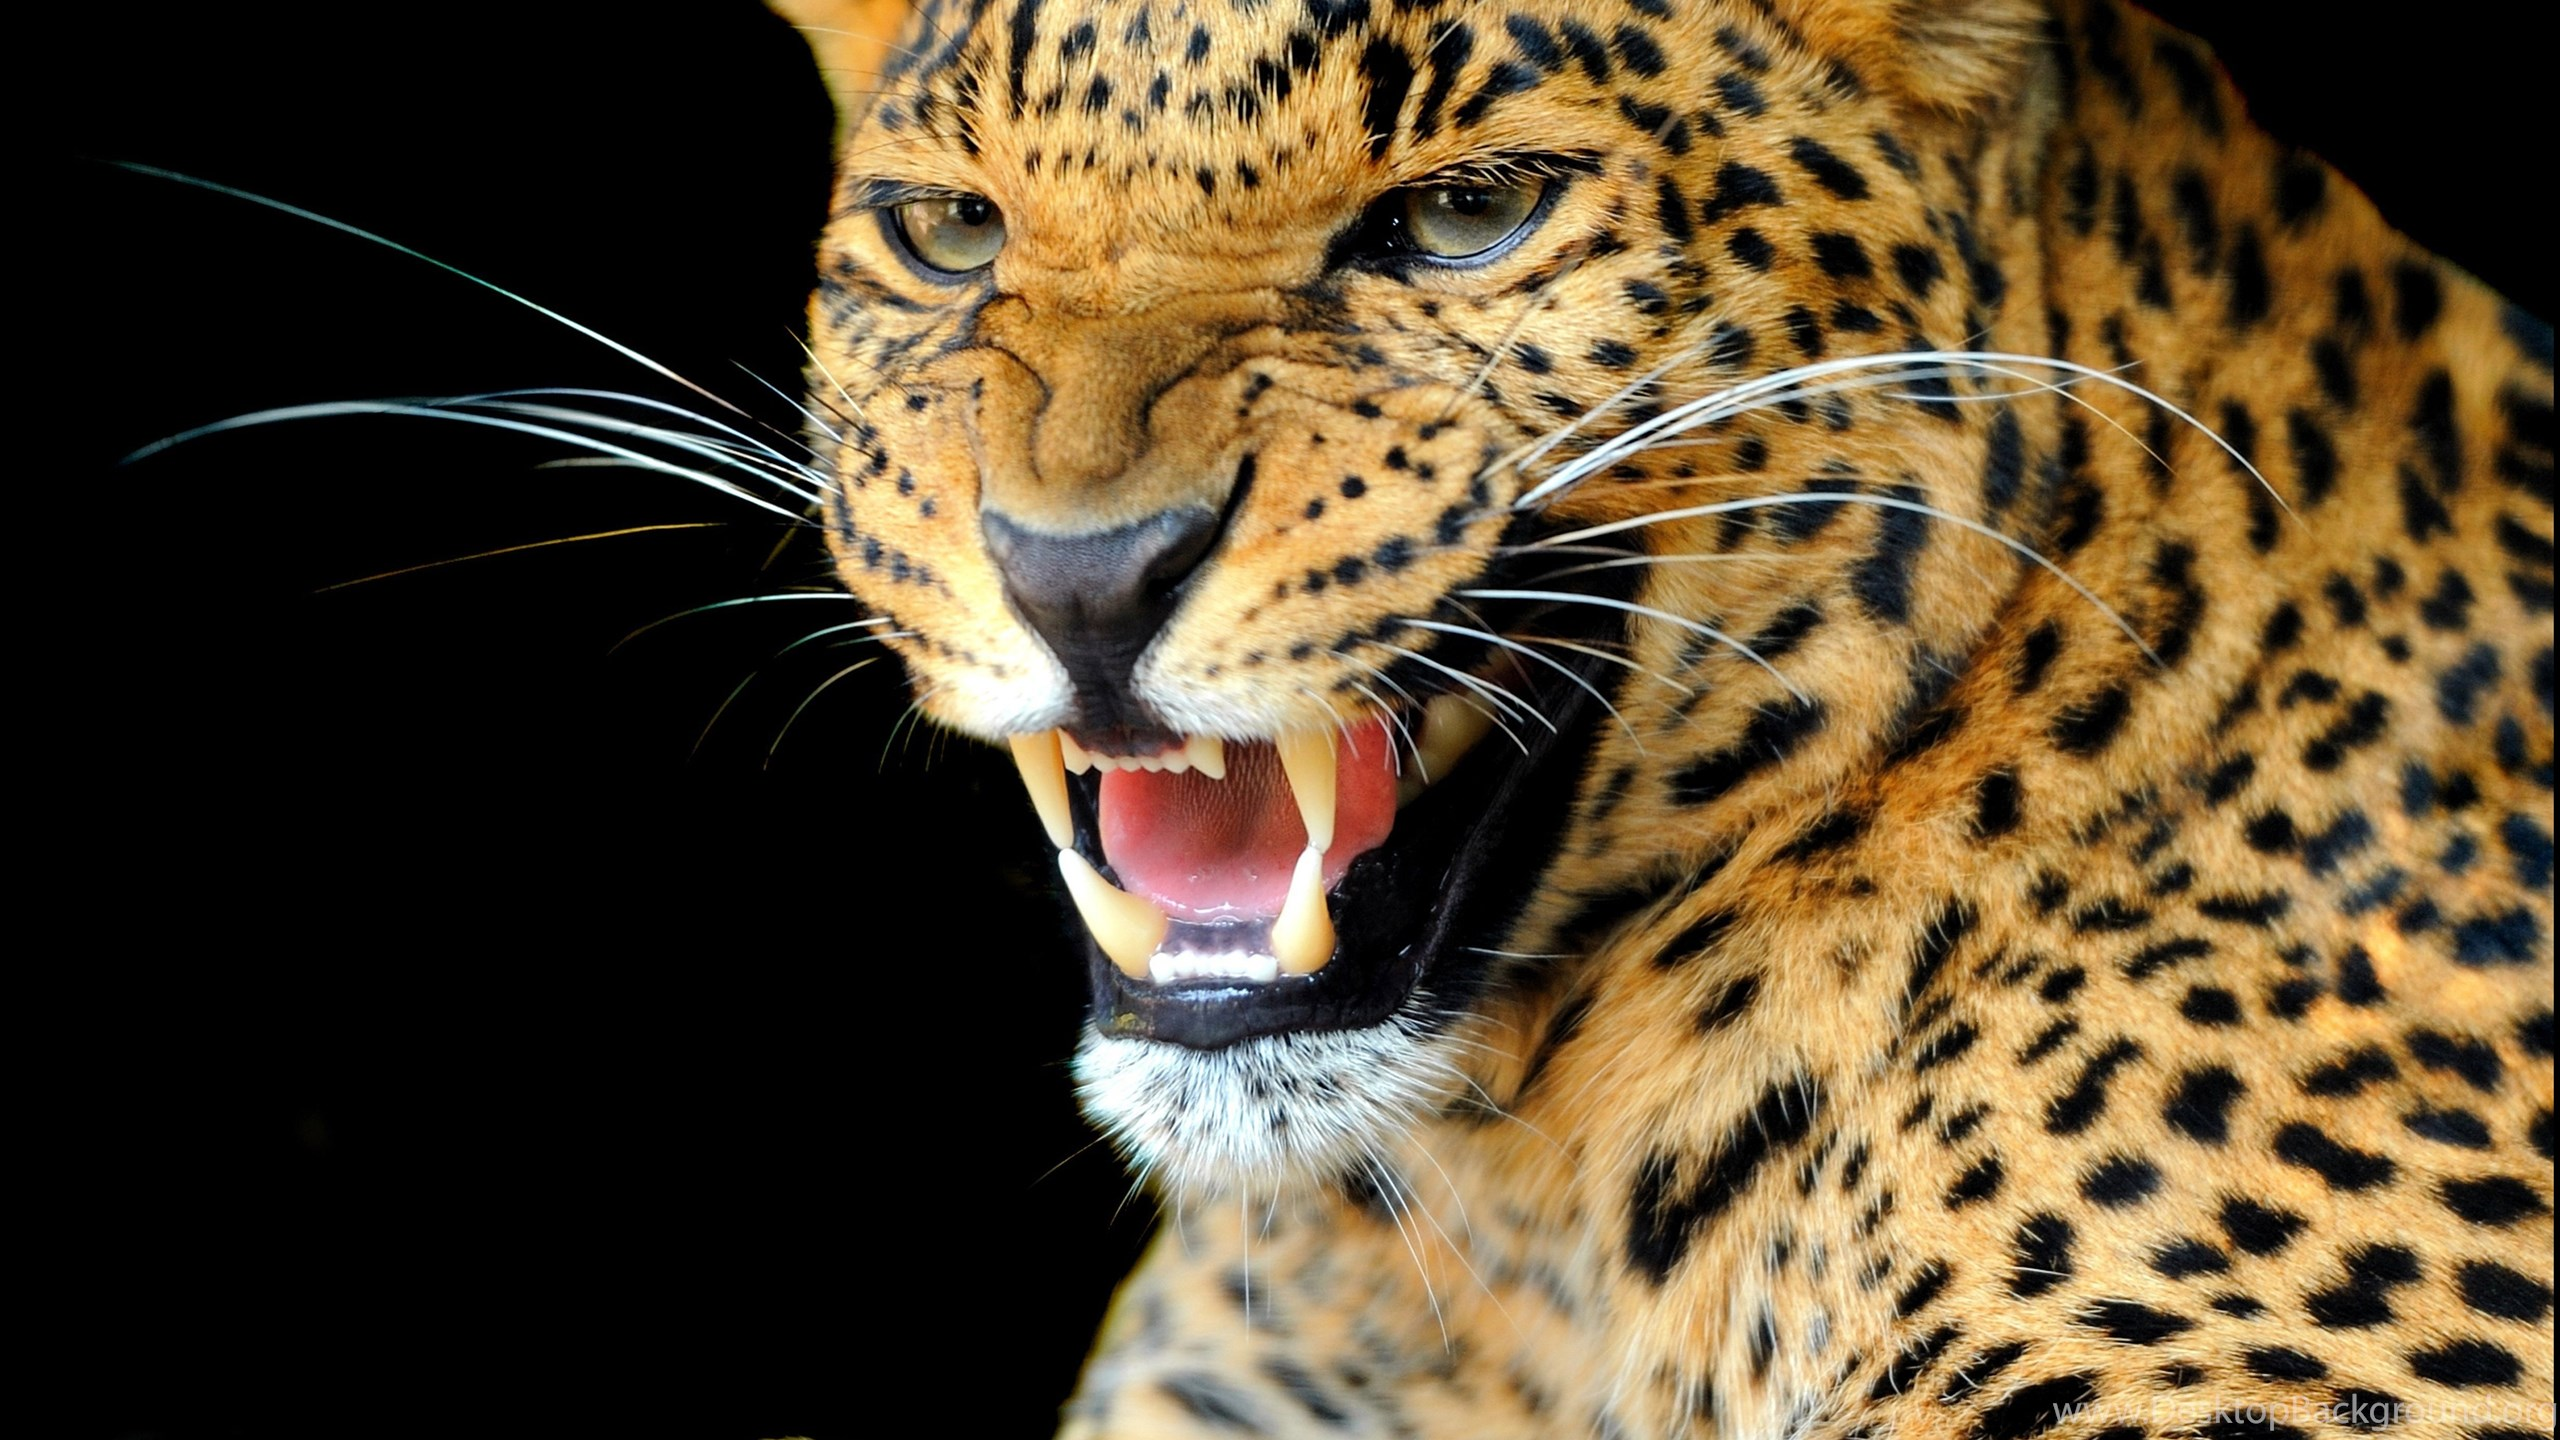 Animals Happy Wallpapers Hd Desktop And Mobile Backgrounds: Animals, Jaguars Wallpapers HD / Desktop And Mobile